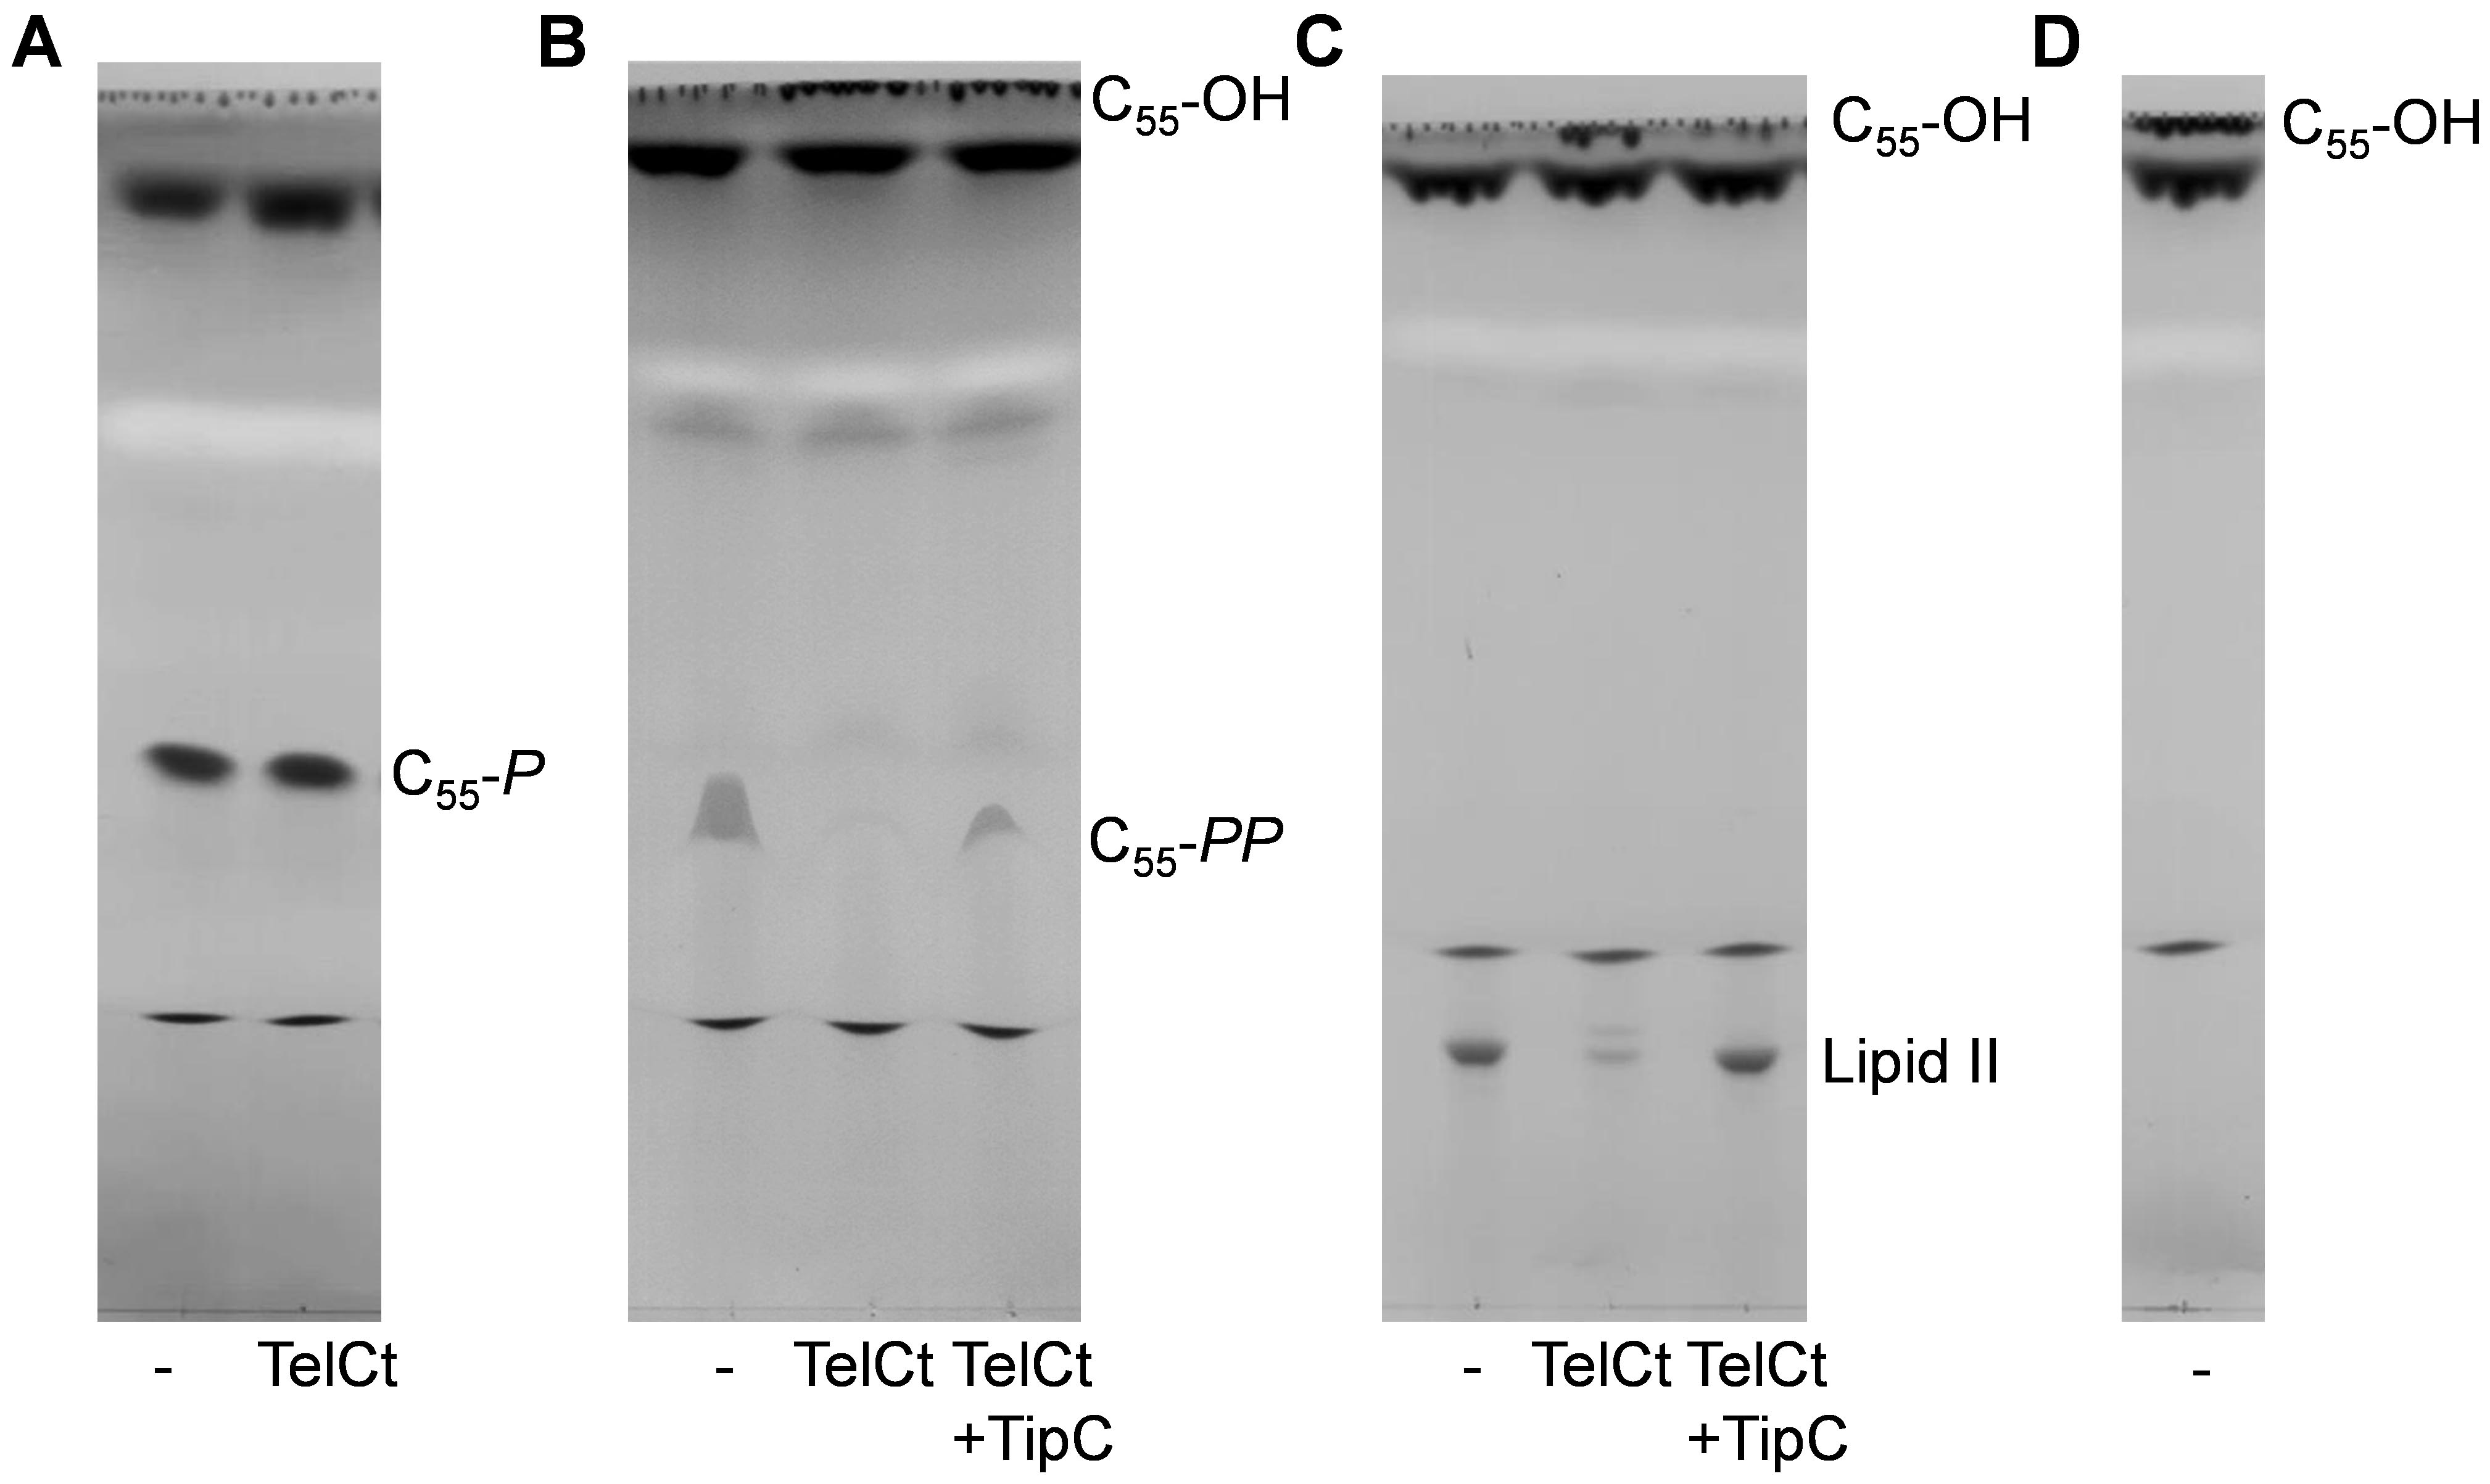 Bacterial Cell Wall Precursor Phosphatase Assays Using Thin Layer